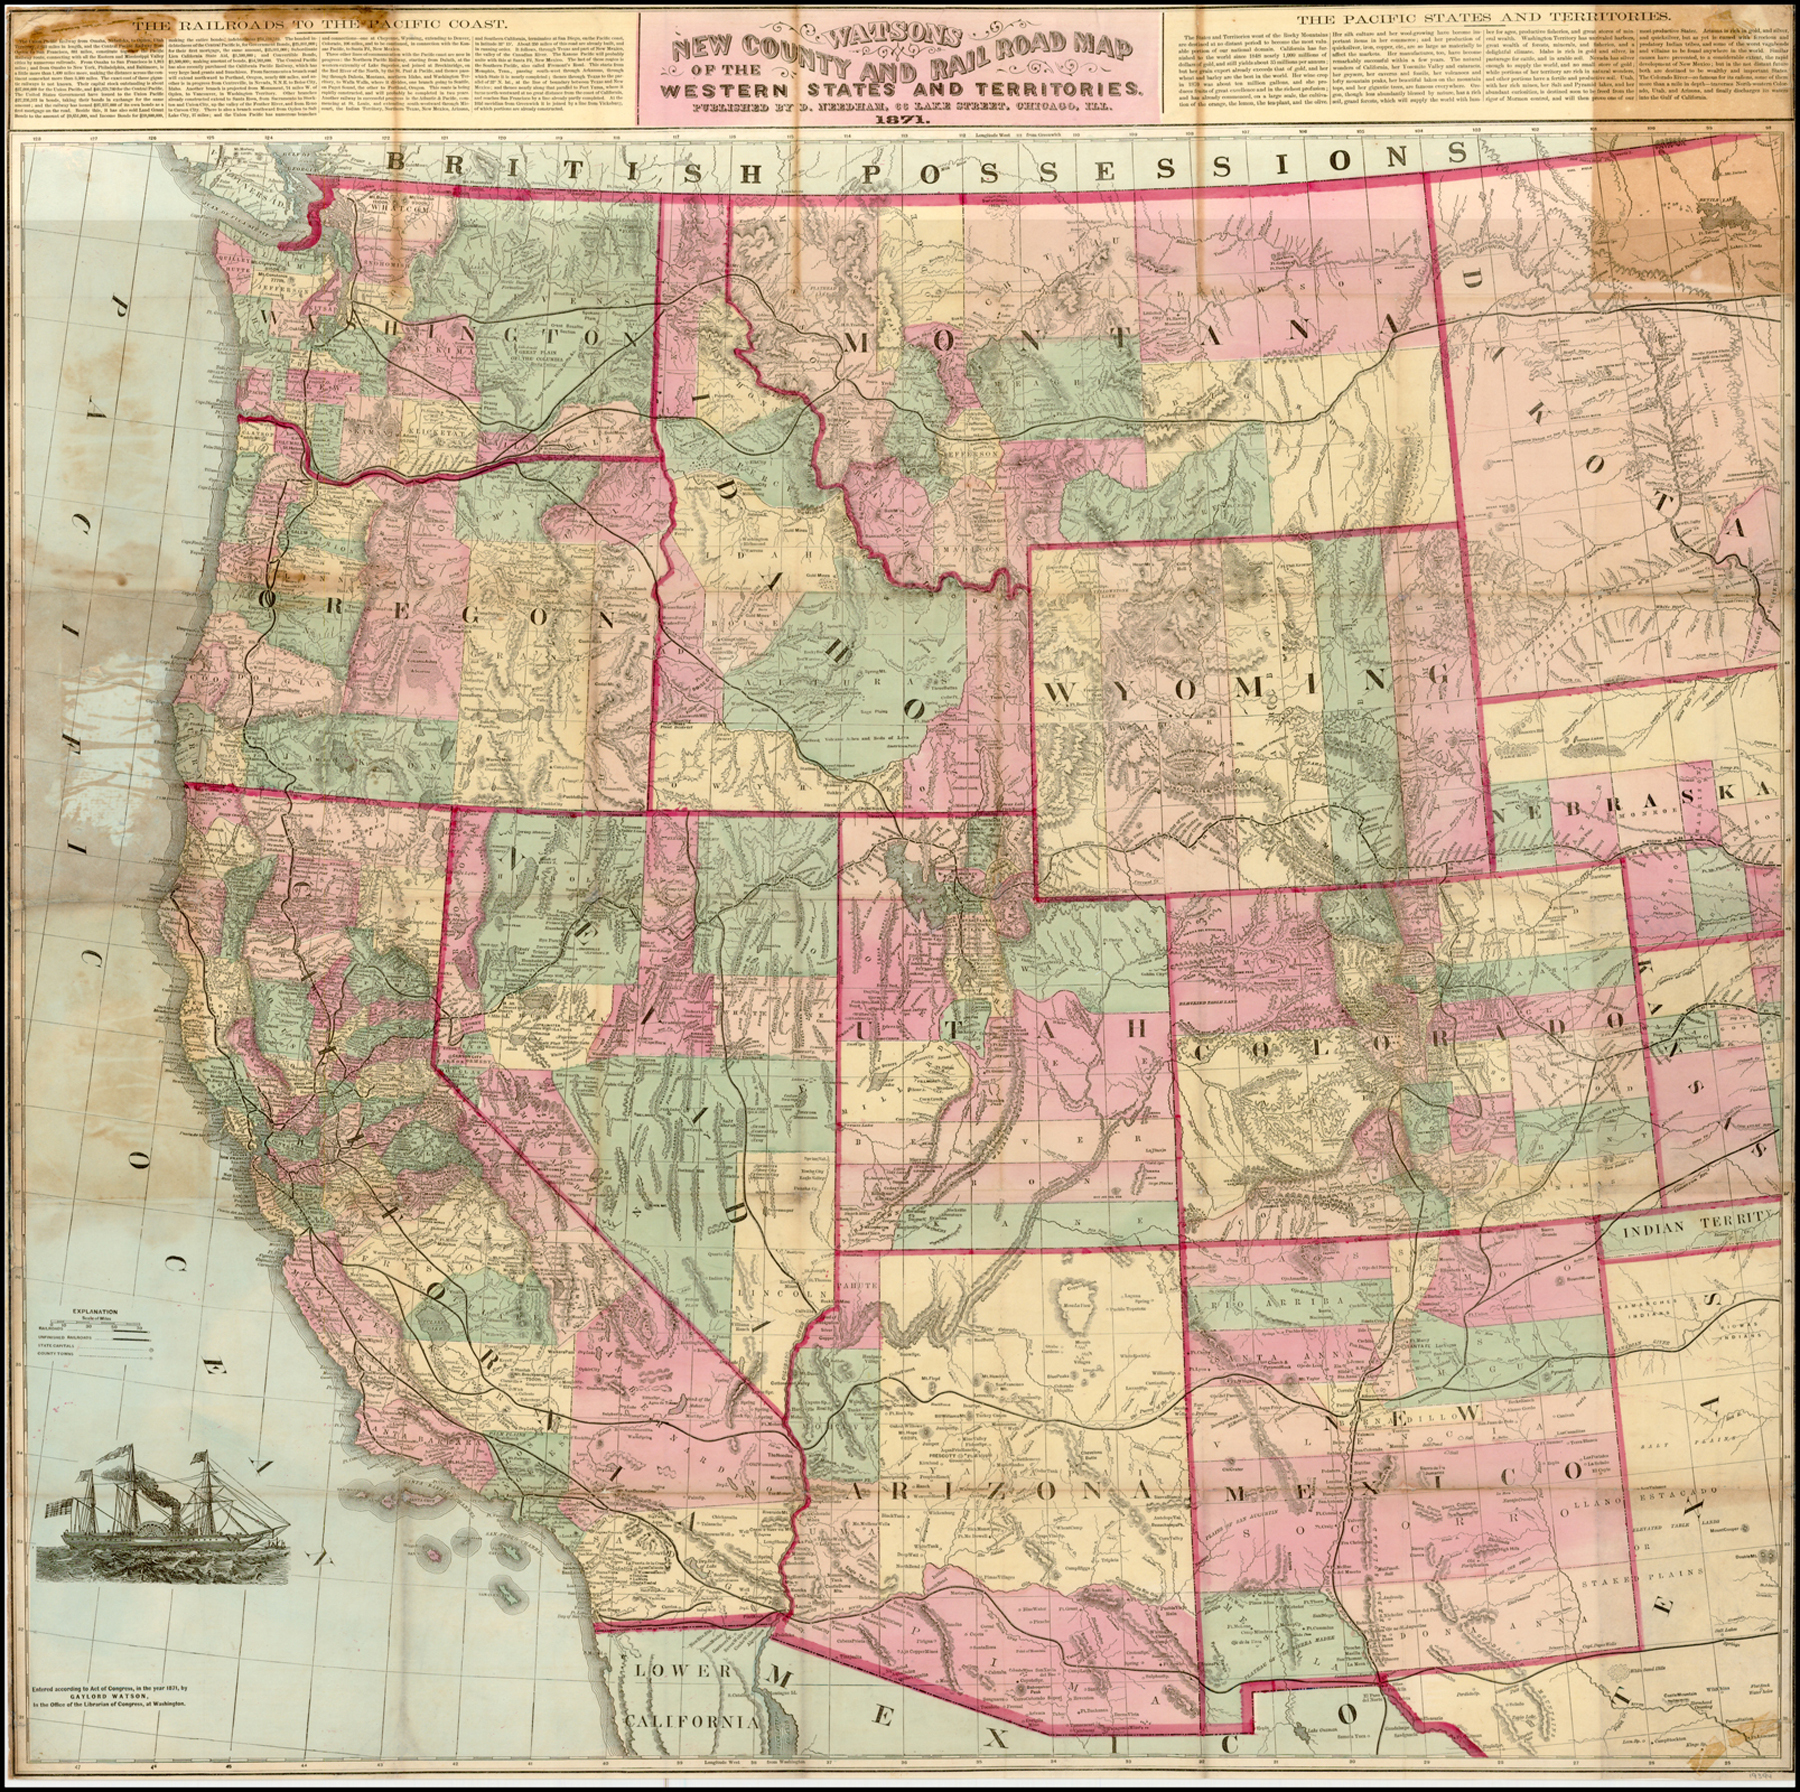 Watsons New County And Rail Road Map Of The Western States